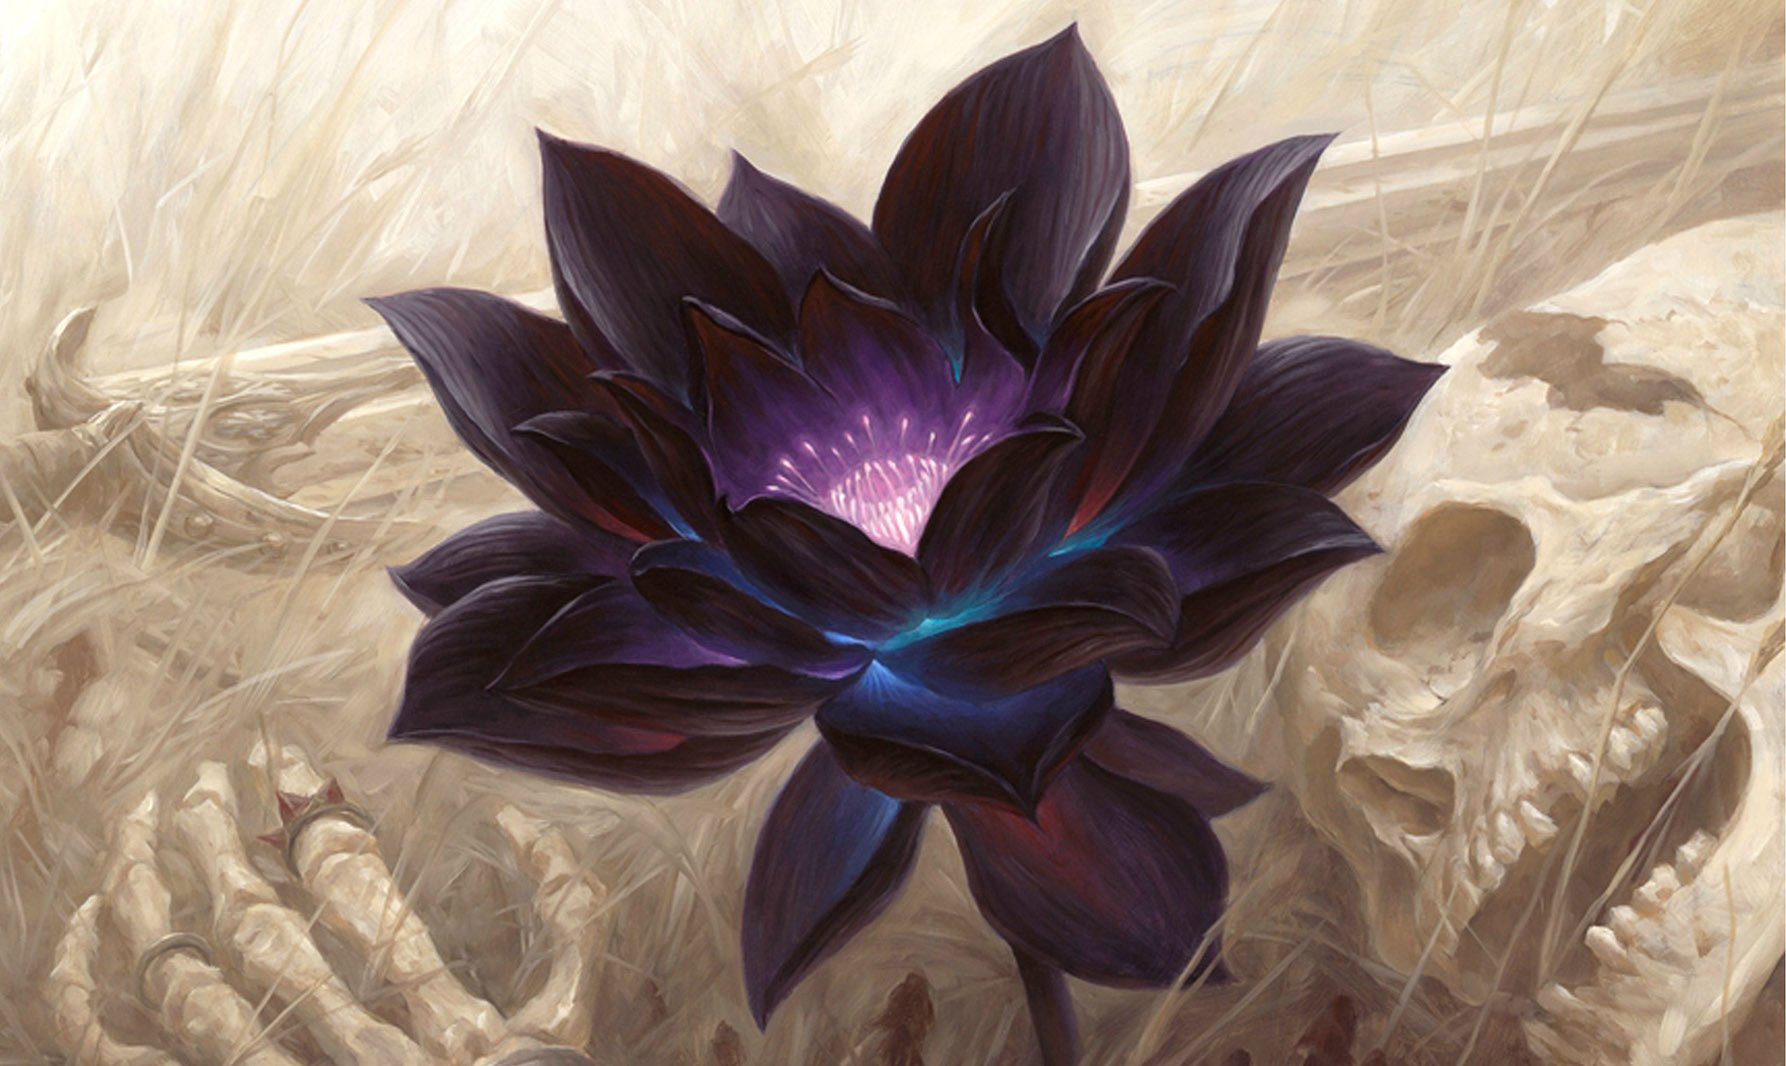 Black Lotus Playmat 24 x 14 inch Mousepad for Yugioh Pokemon Magic the Gathering